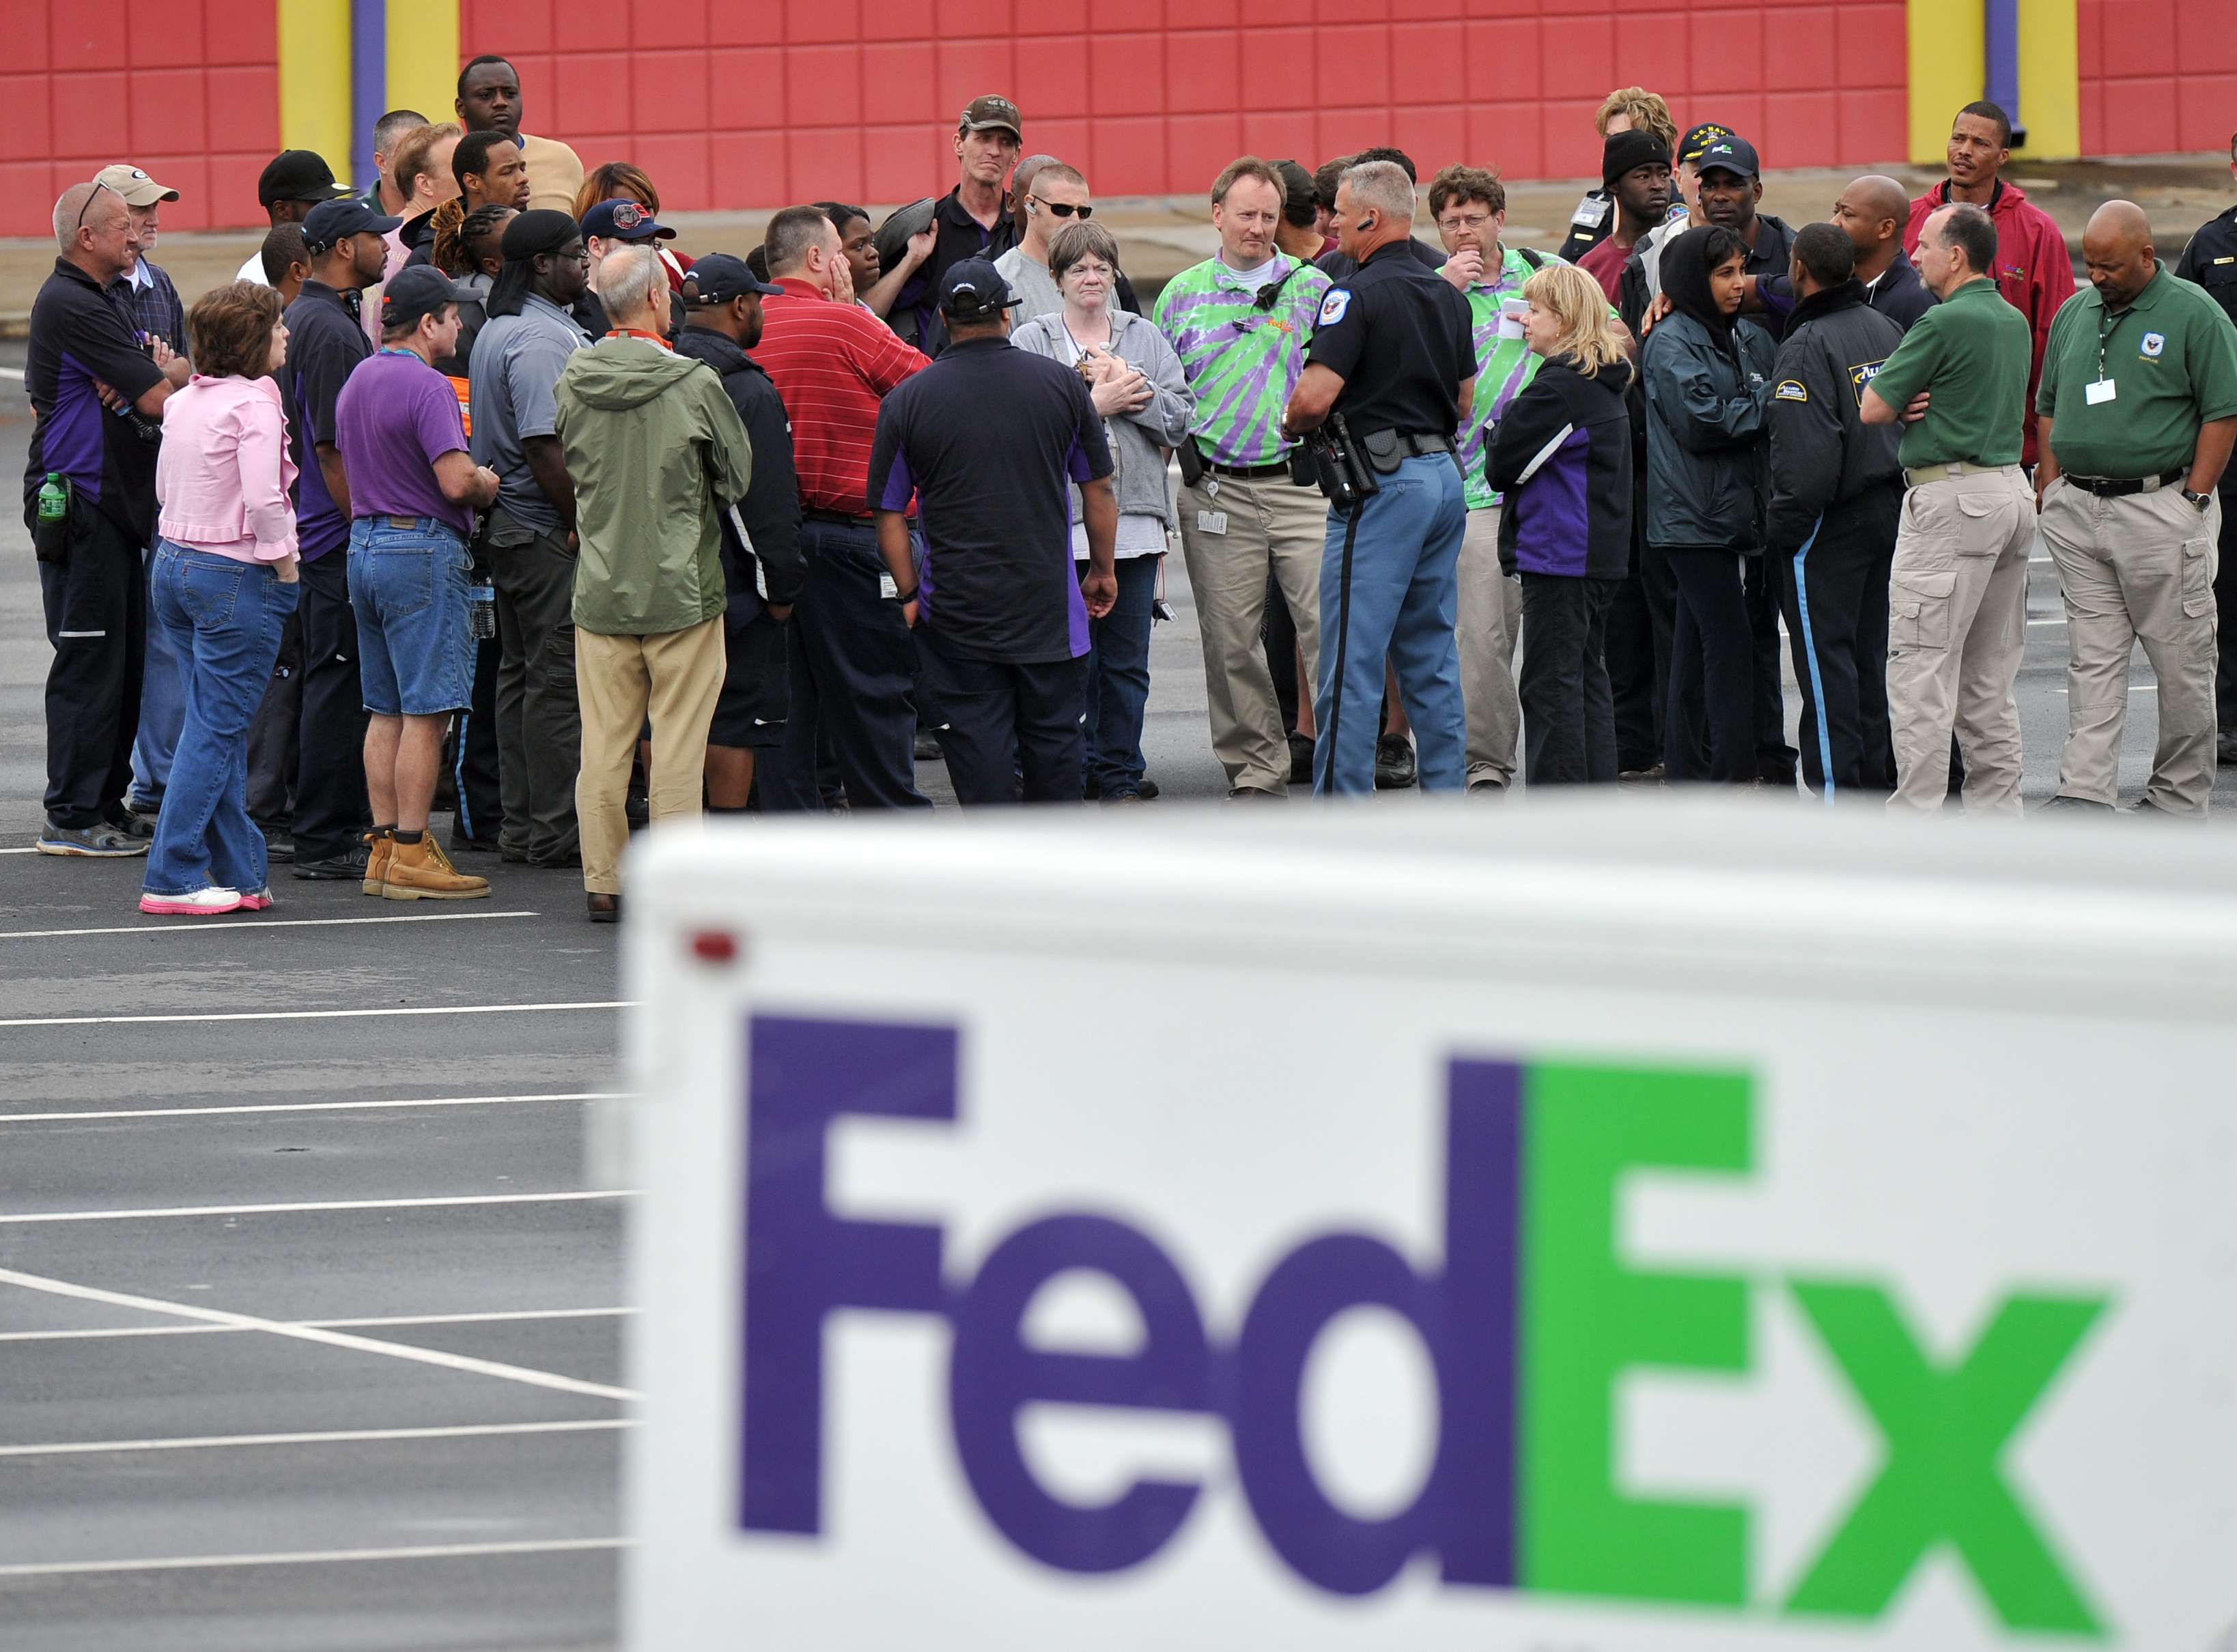 """A Cobb County Police Officer speaks to FedEx employees and family members gathered at the parking lot of a skating rink located near the shipping facility where a gunman open fire in Kennesaw, Ga., on Tuesday, April 29, 2014.  A shooter described as being armed with an assault rifle and having bullets strapped across his chest """"like Rambo"""" opened fire Tuesday morning at a FedEx station outside Atlanta, wounding at least six people before police found the suspect dead from an apparent self-inflicted gunshot.  (AP Photo/Atlanta Journal-Constitution, Brant Sanderlin)"""